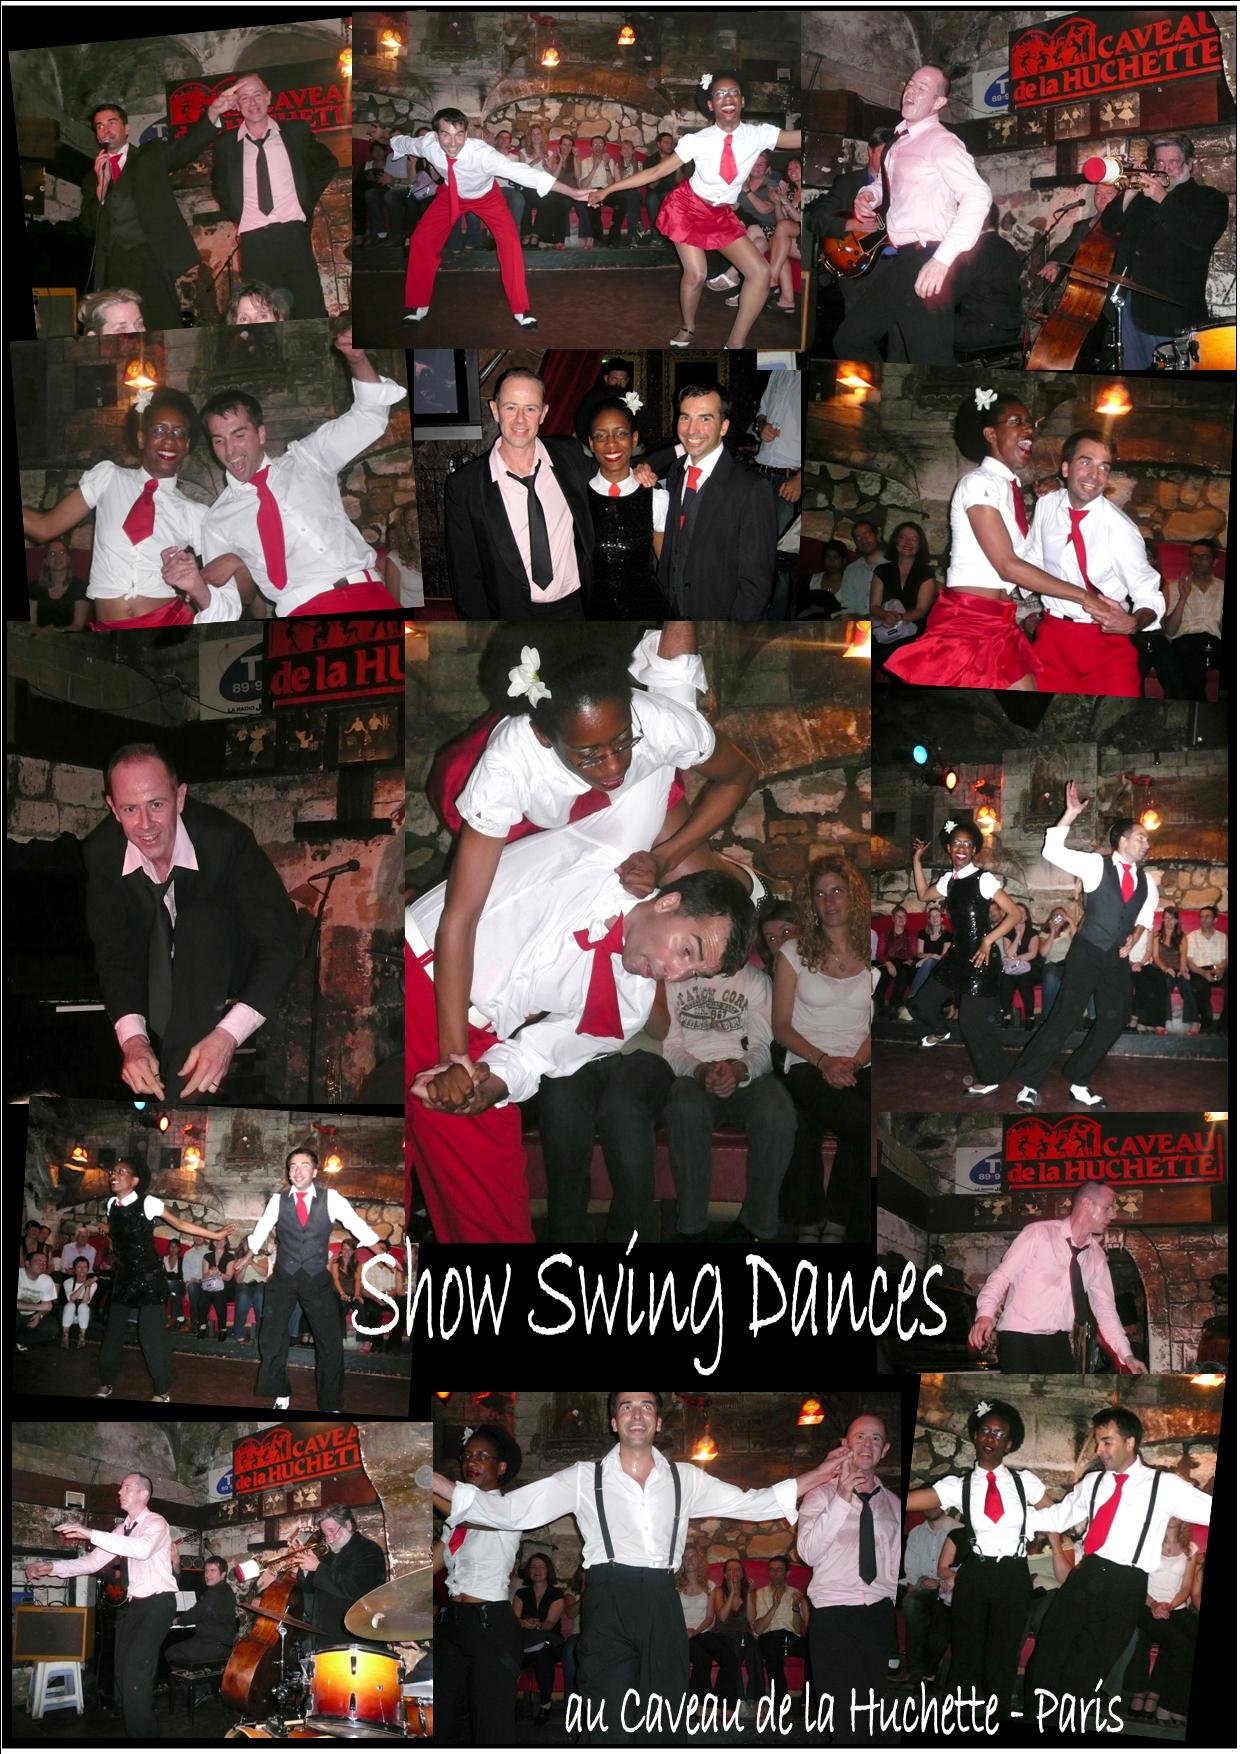 photos-show-swing-dances.jpg